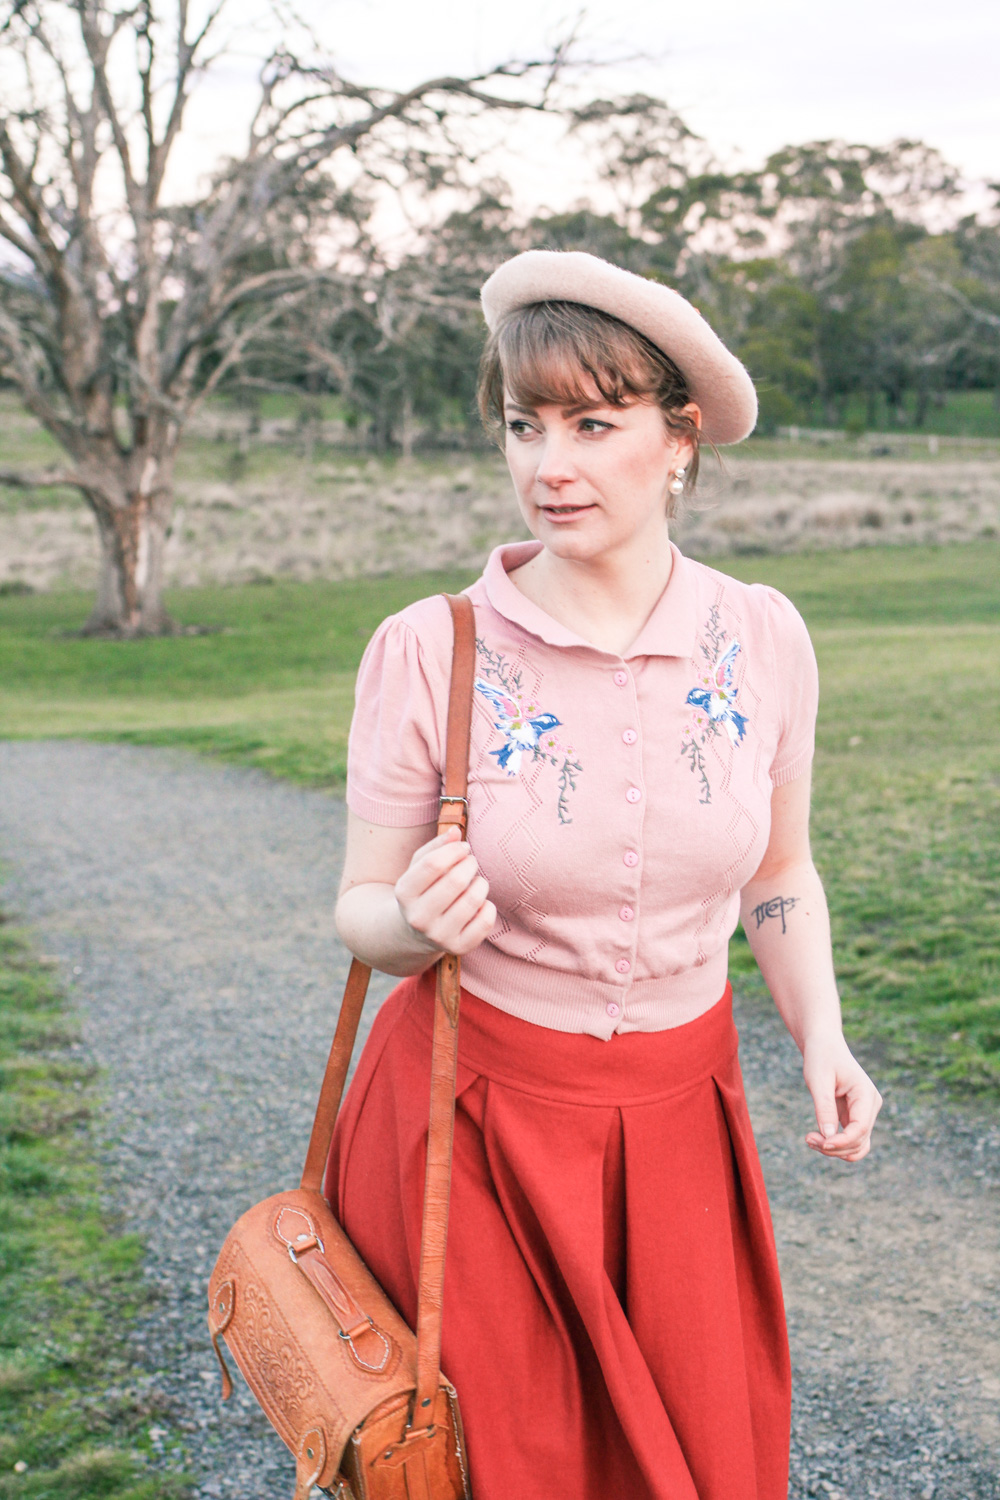 @findingfemme wears pink embroidered cardigan and beret